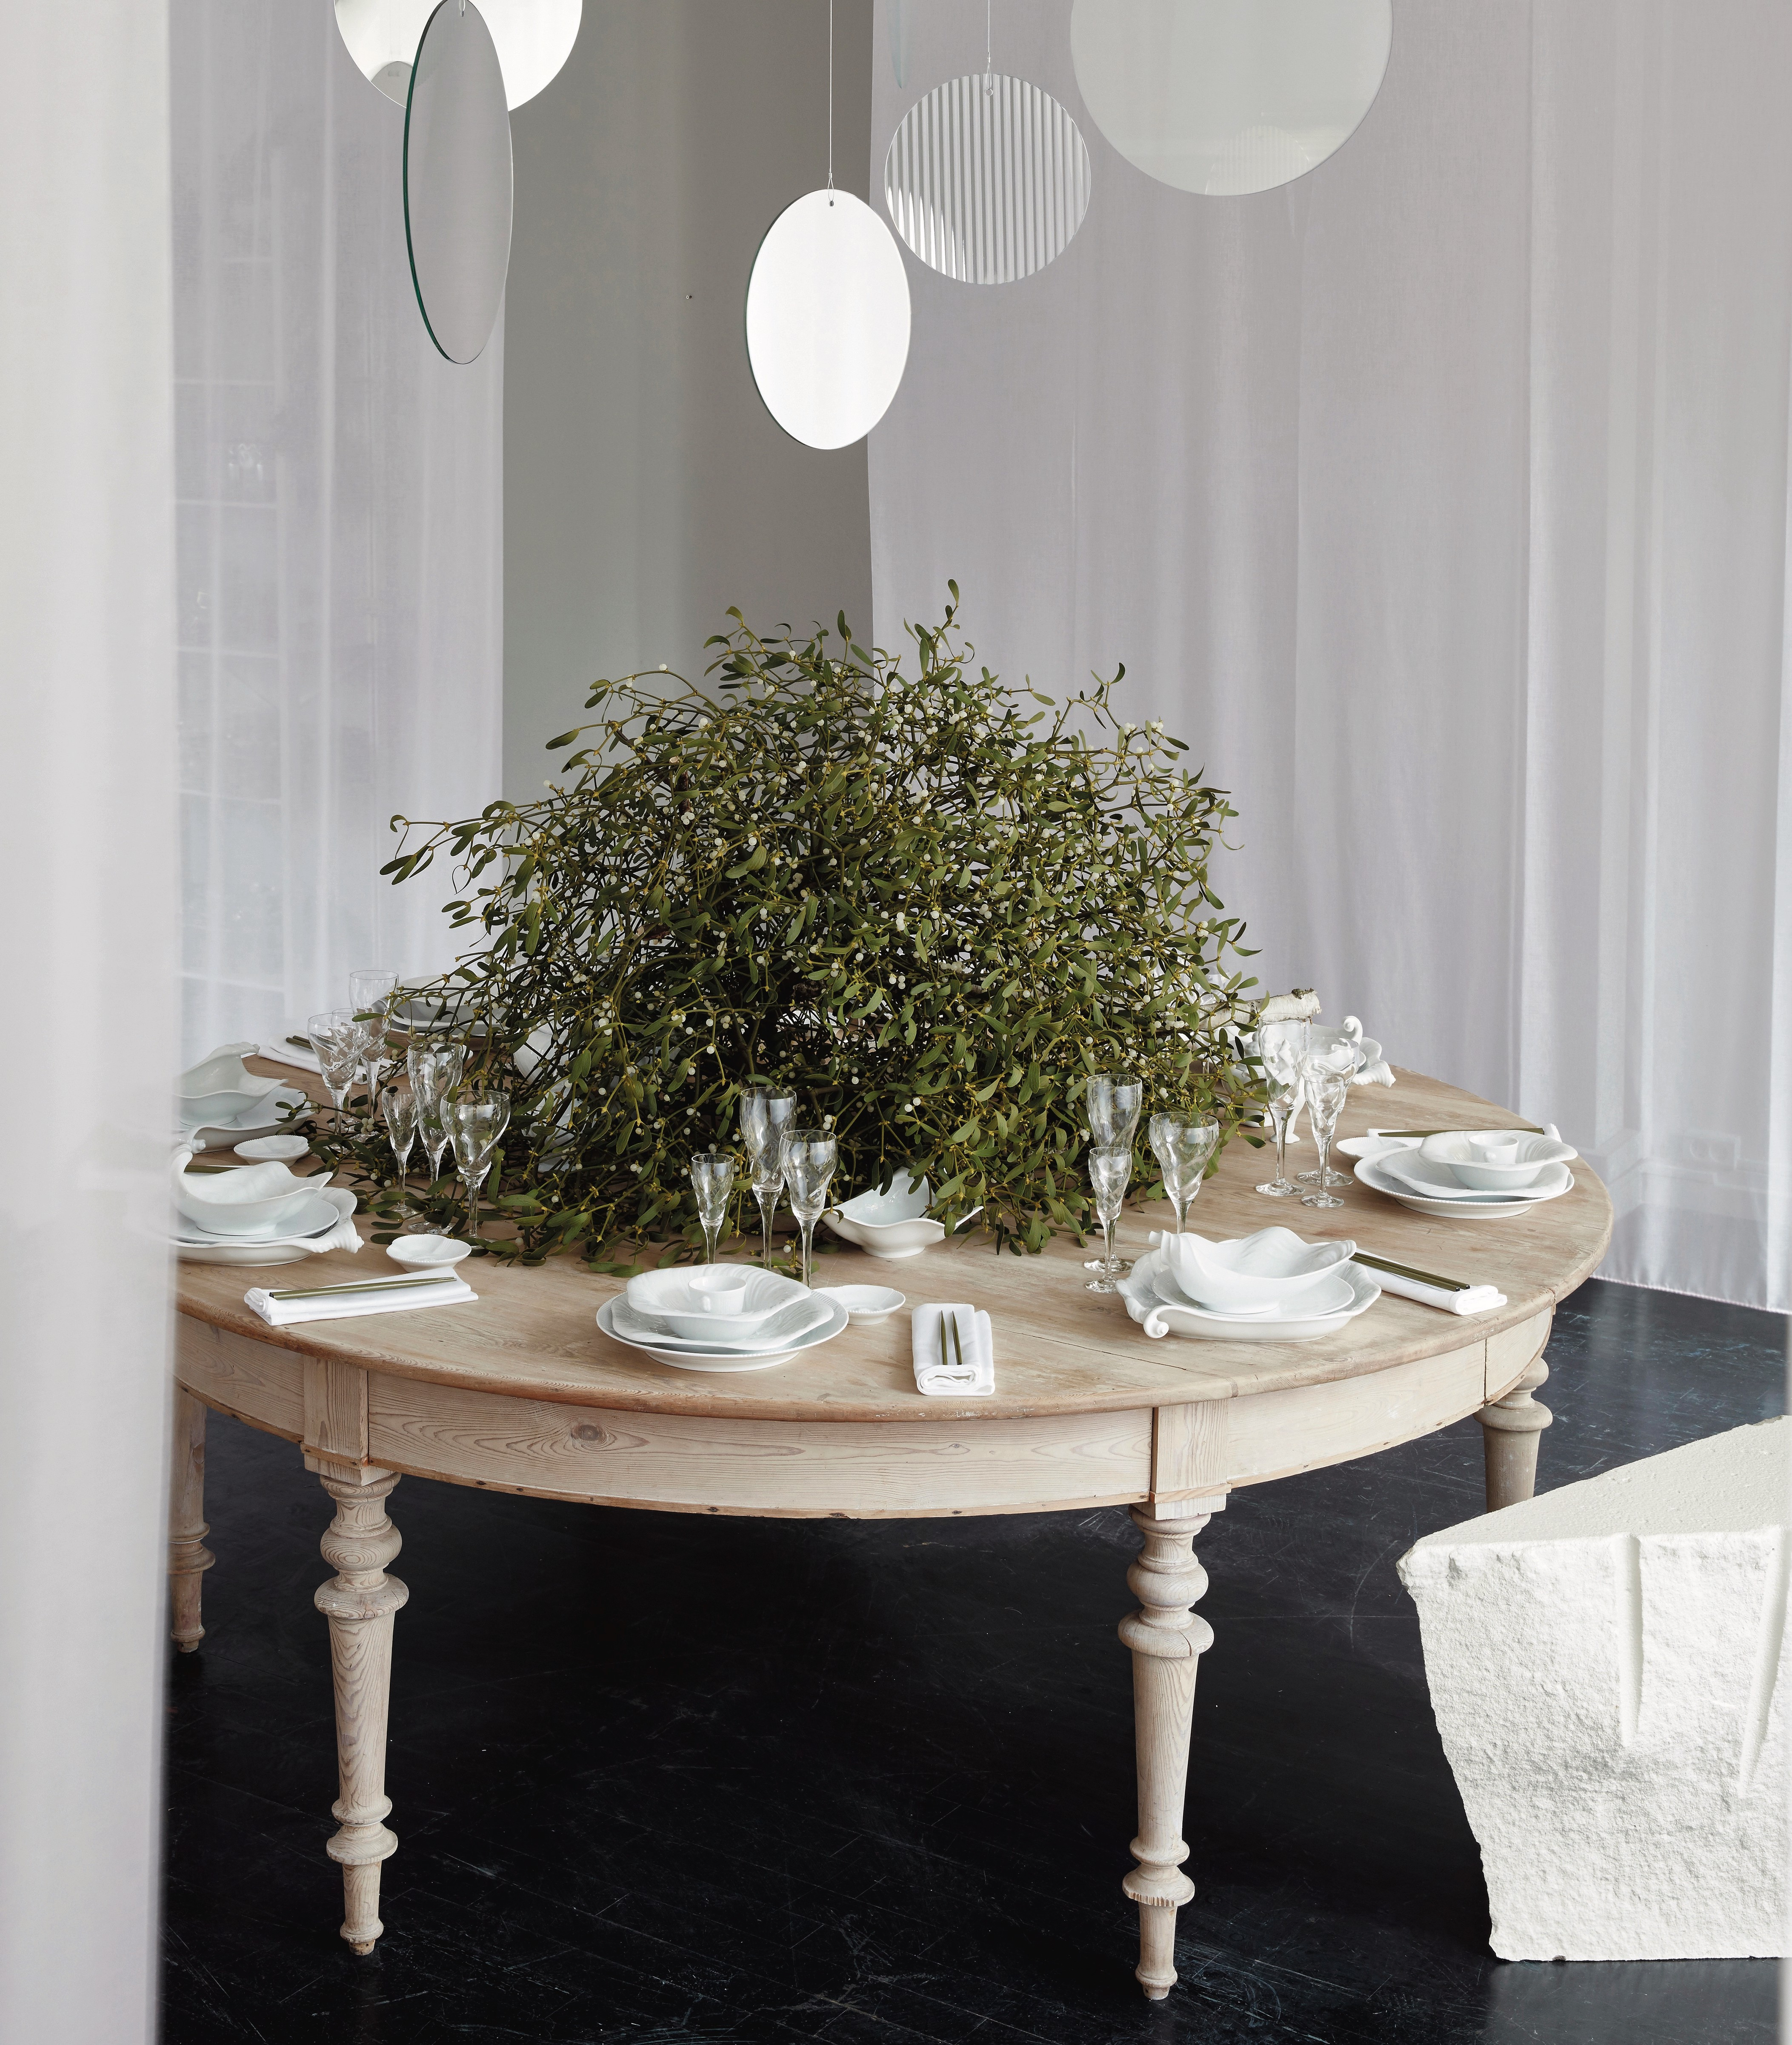 fashionable Christmas - Mark Tan's traditional Scandinavia table with natural greenery takes on a dramatic organic white-on-white affect with RC White Fluted porcelain plus Arje Griegst's Conch series dishware - Royal Copenhagen via Atticmag